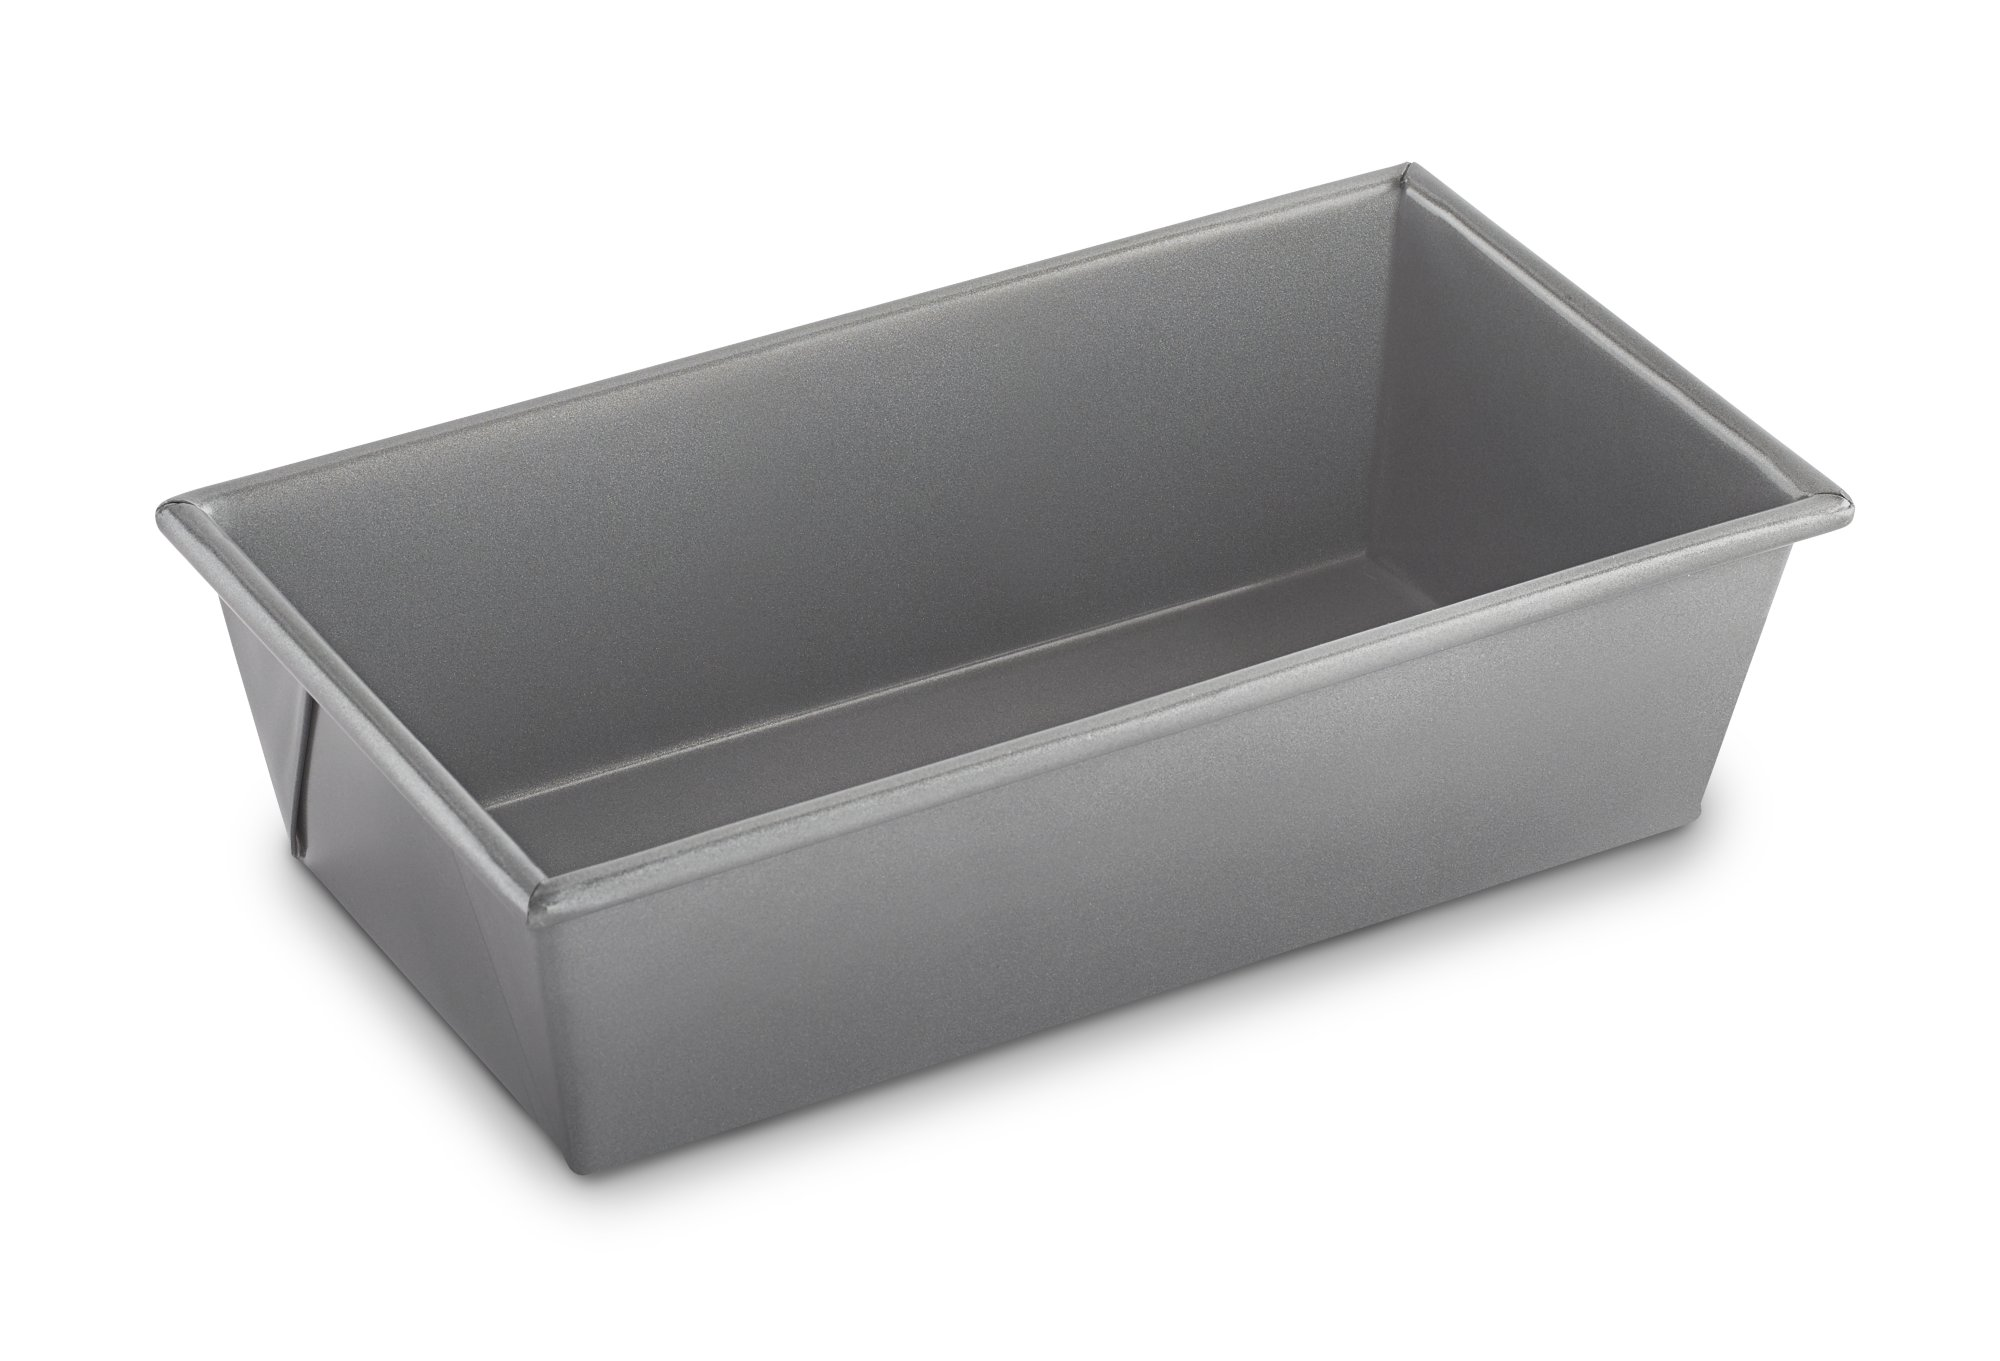 Select by Calphalon Nonstick Bakeware Large Loaf Pan